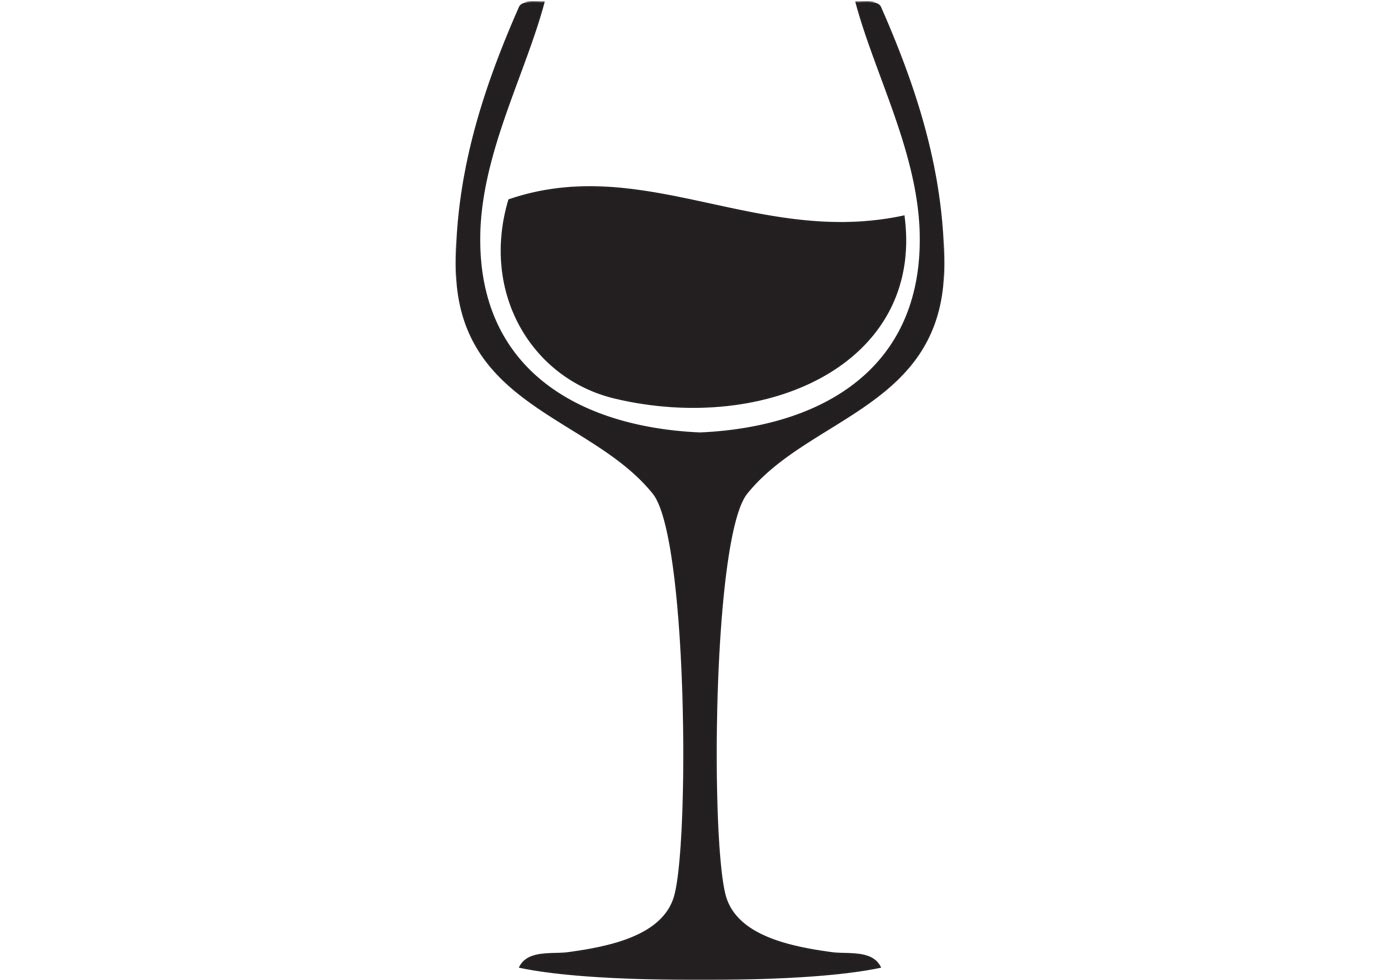 Wine Glass Silhouette Black And White Clip Art At Clipart